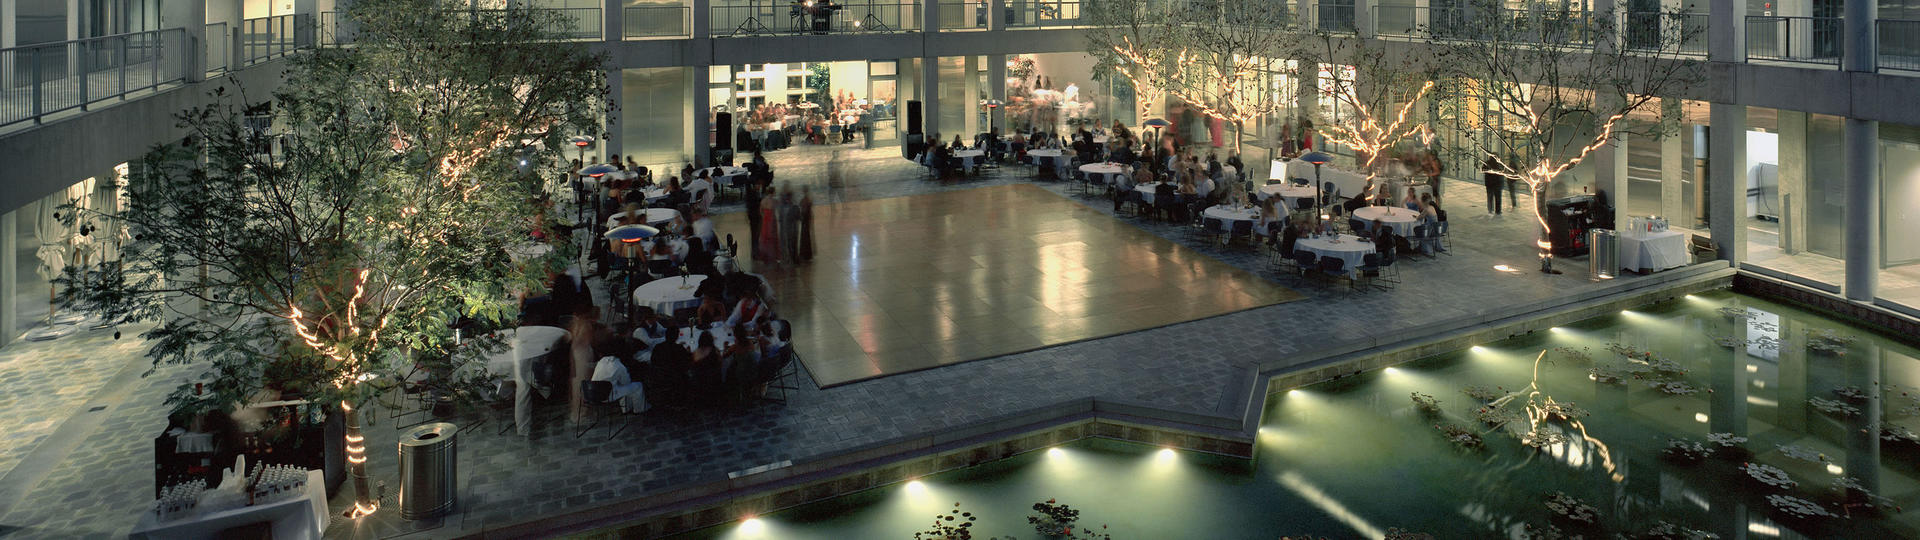 People sitting at tables in Taper Courtyard at night